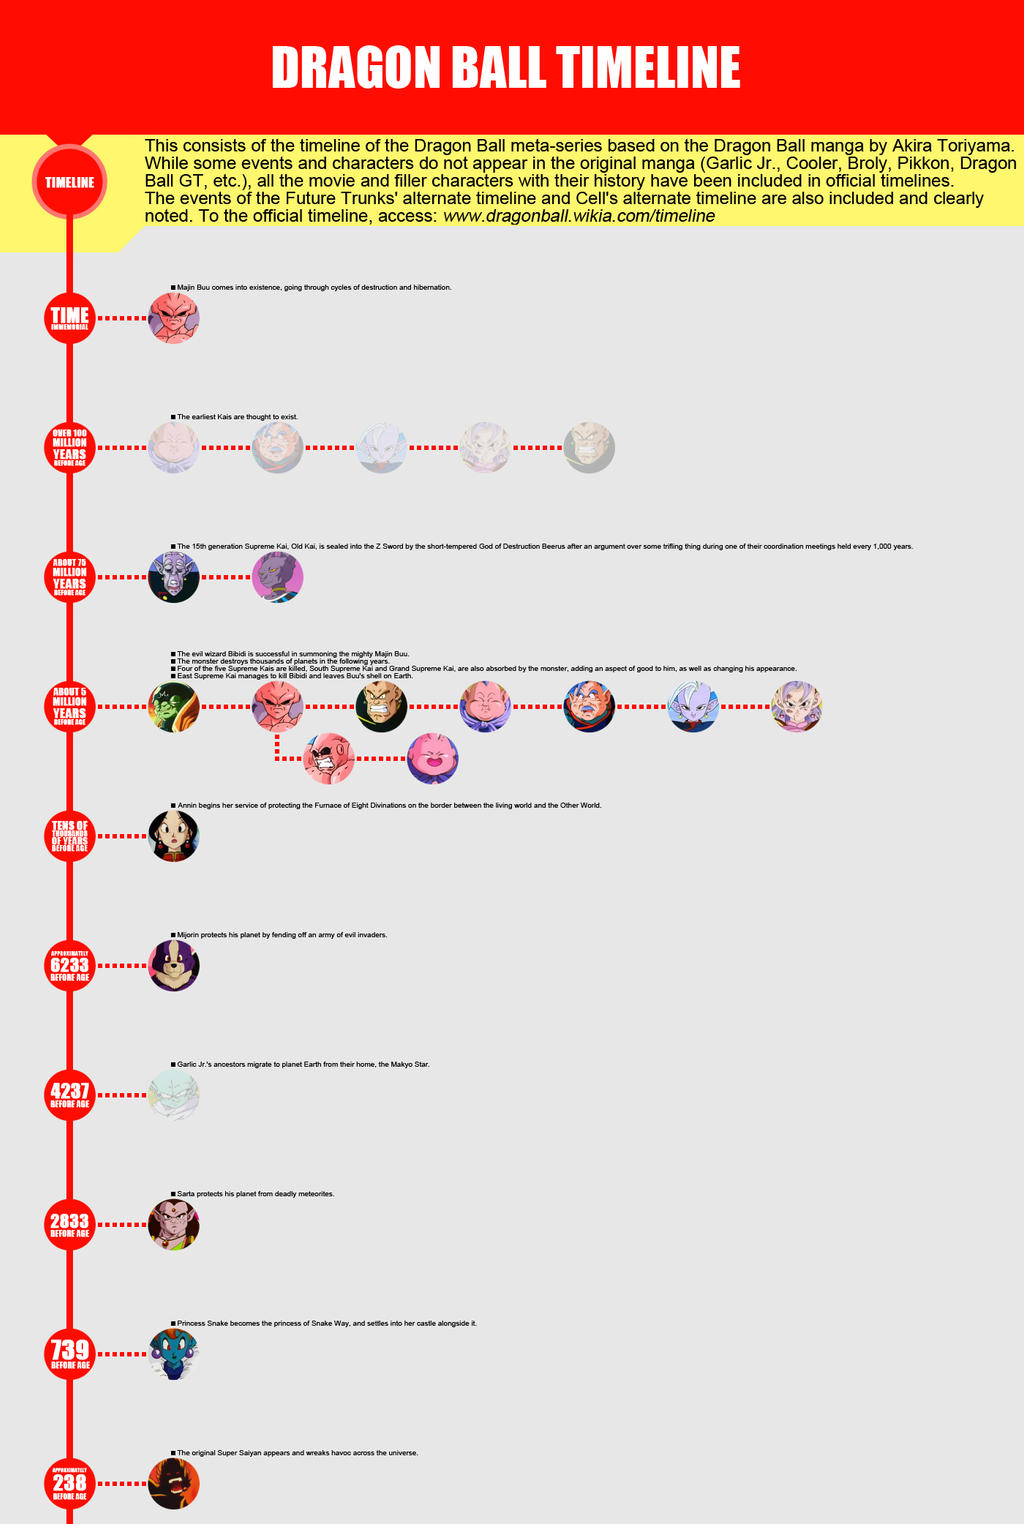 Dragon Ball Timeline By Sbddbz On Deviantart Jackie and rachel get married. dragon ball timeline by sbddbz on